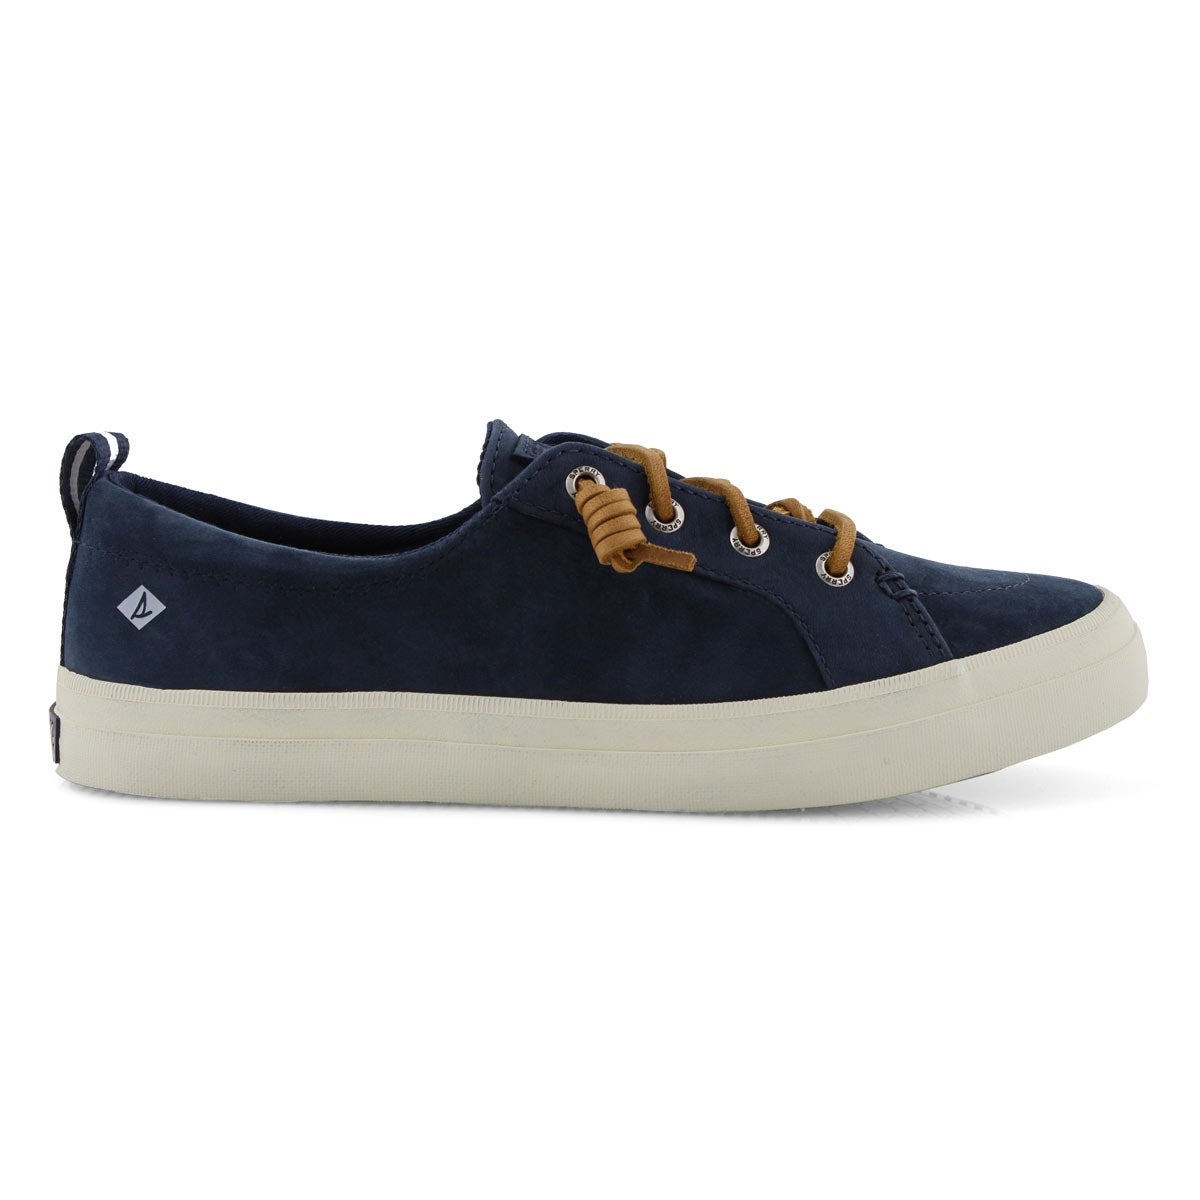 Lds Crest Vibe Washable navy lthr snkr